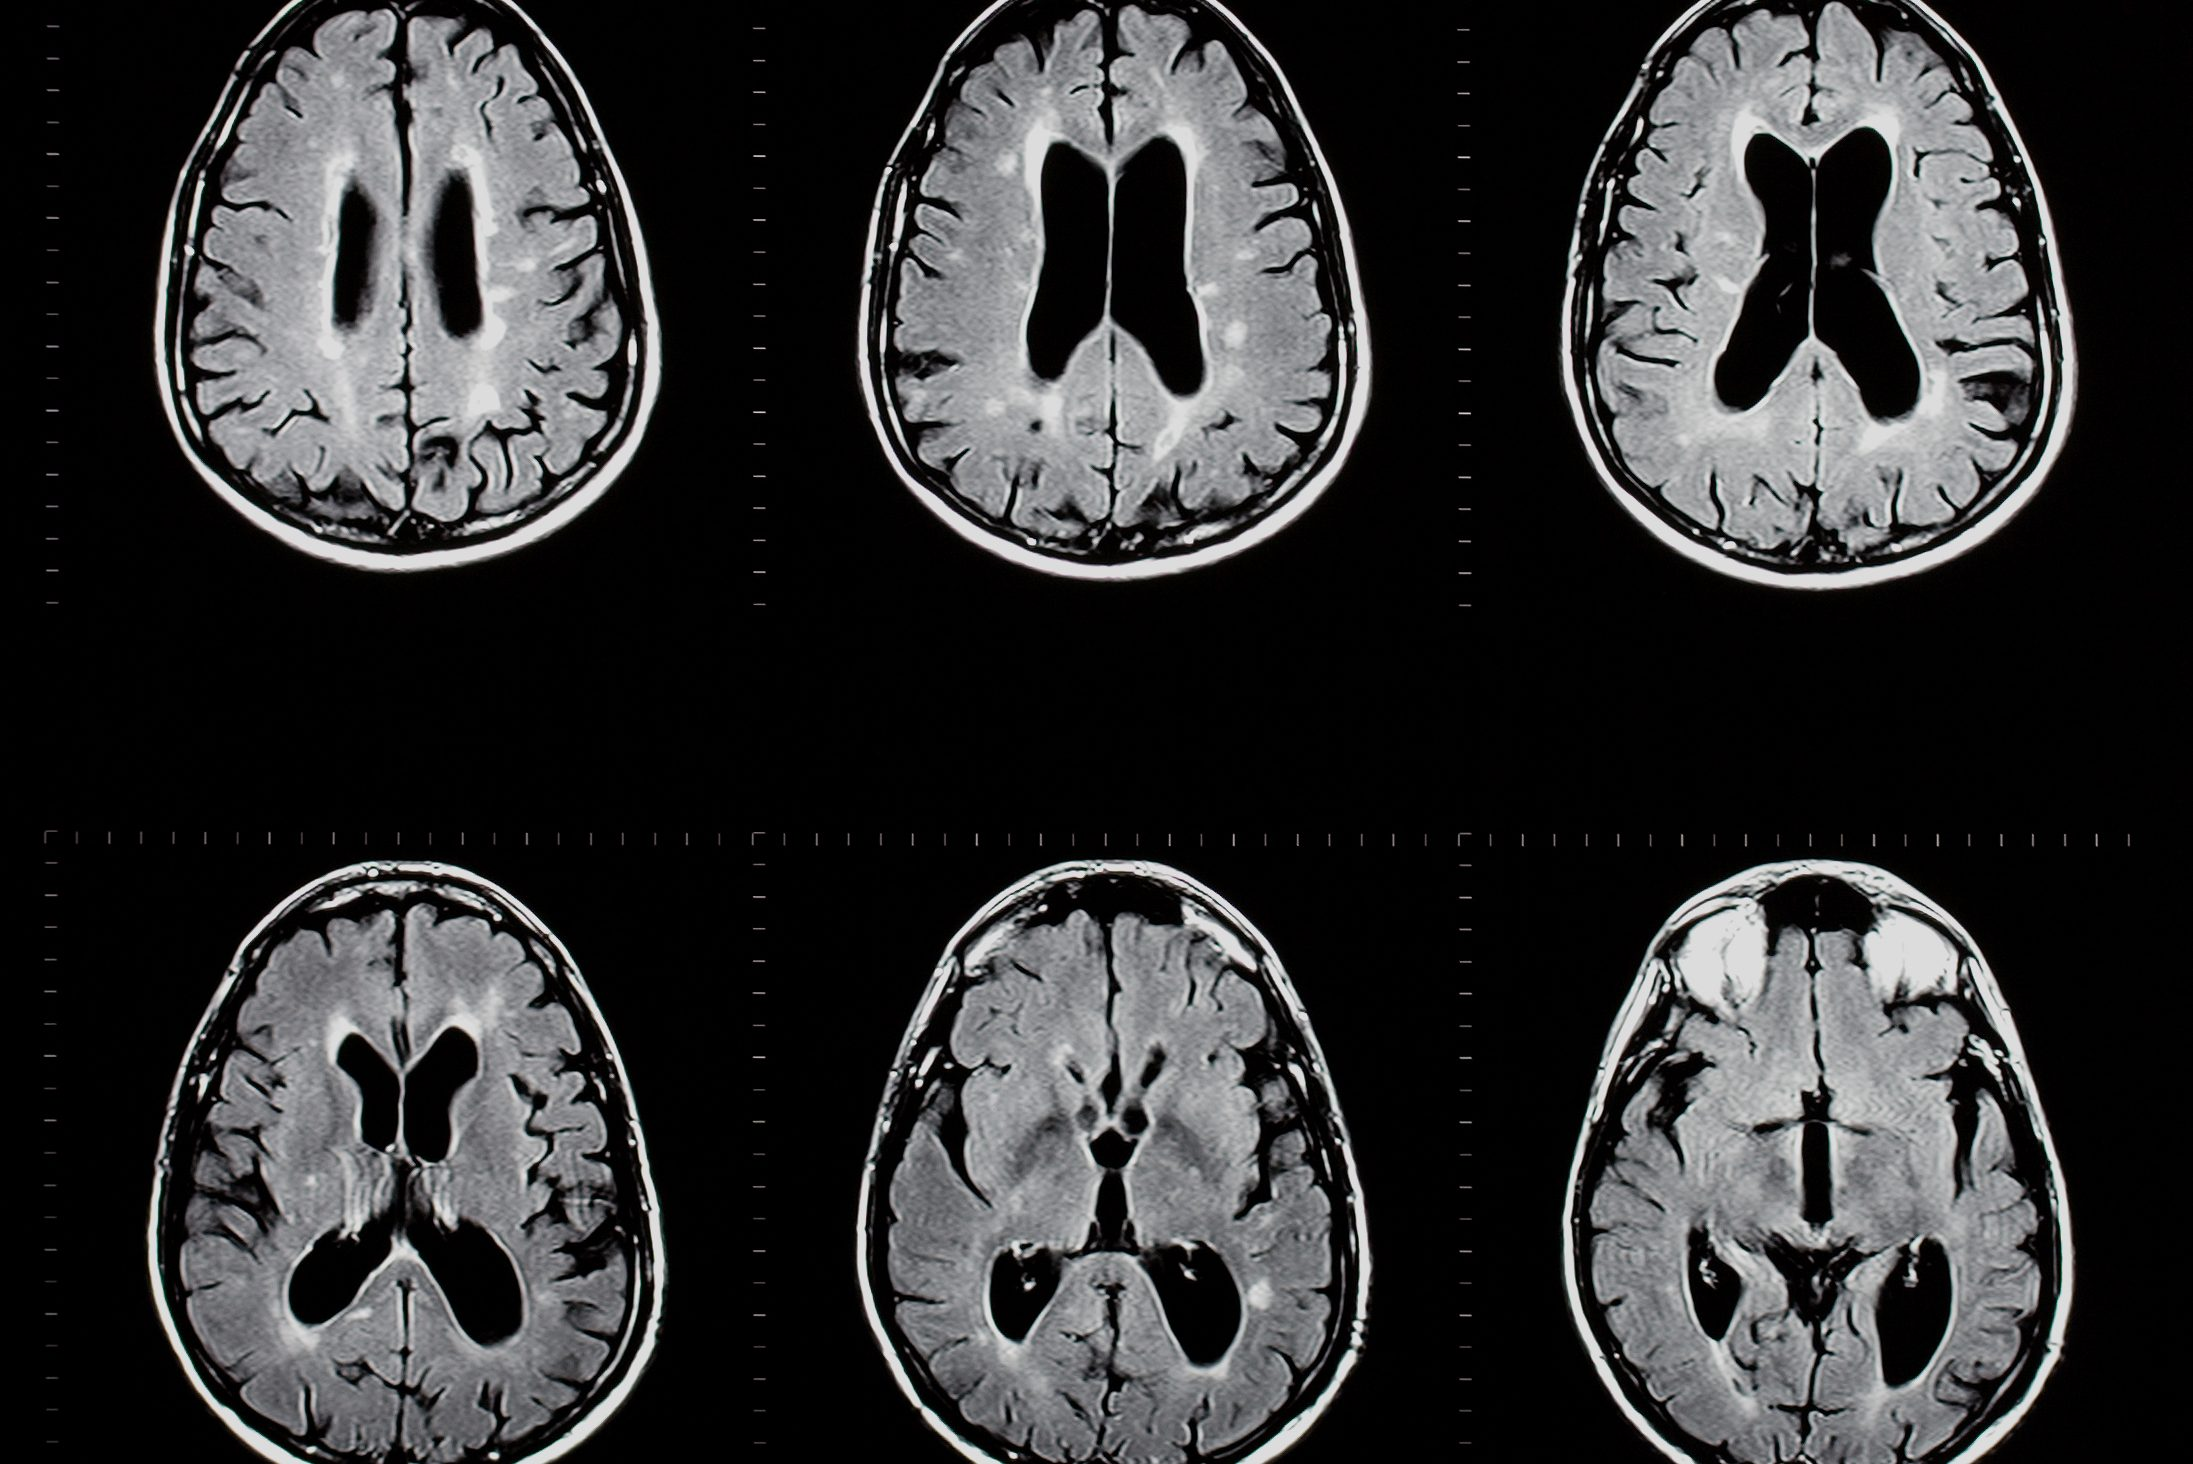 MRI exam of the human brain showing multiple sclerosis plaques. (Getty Images)